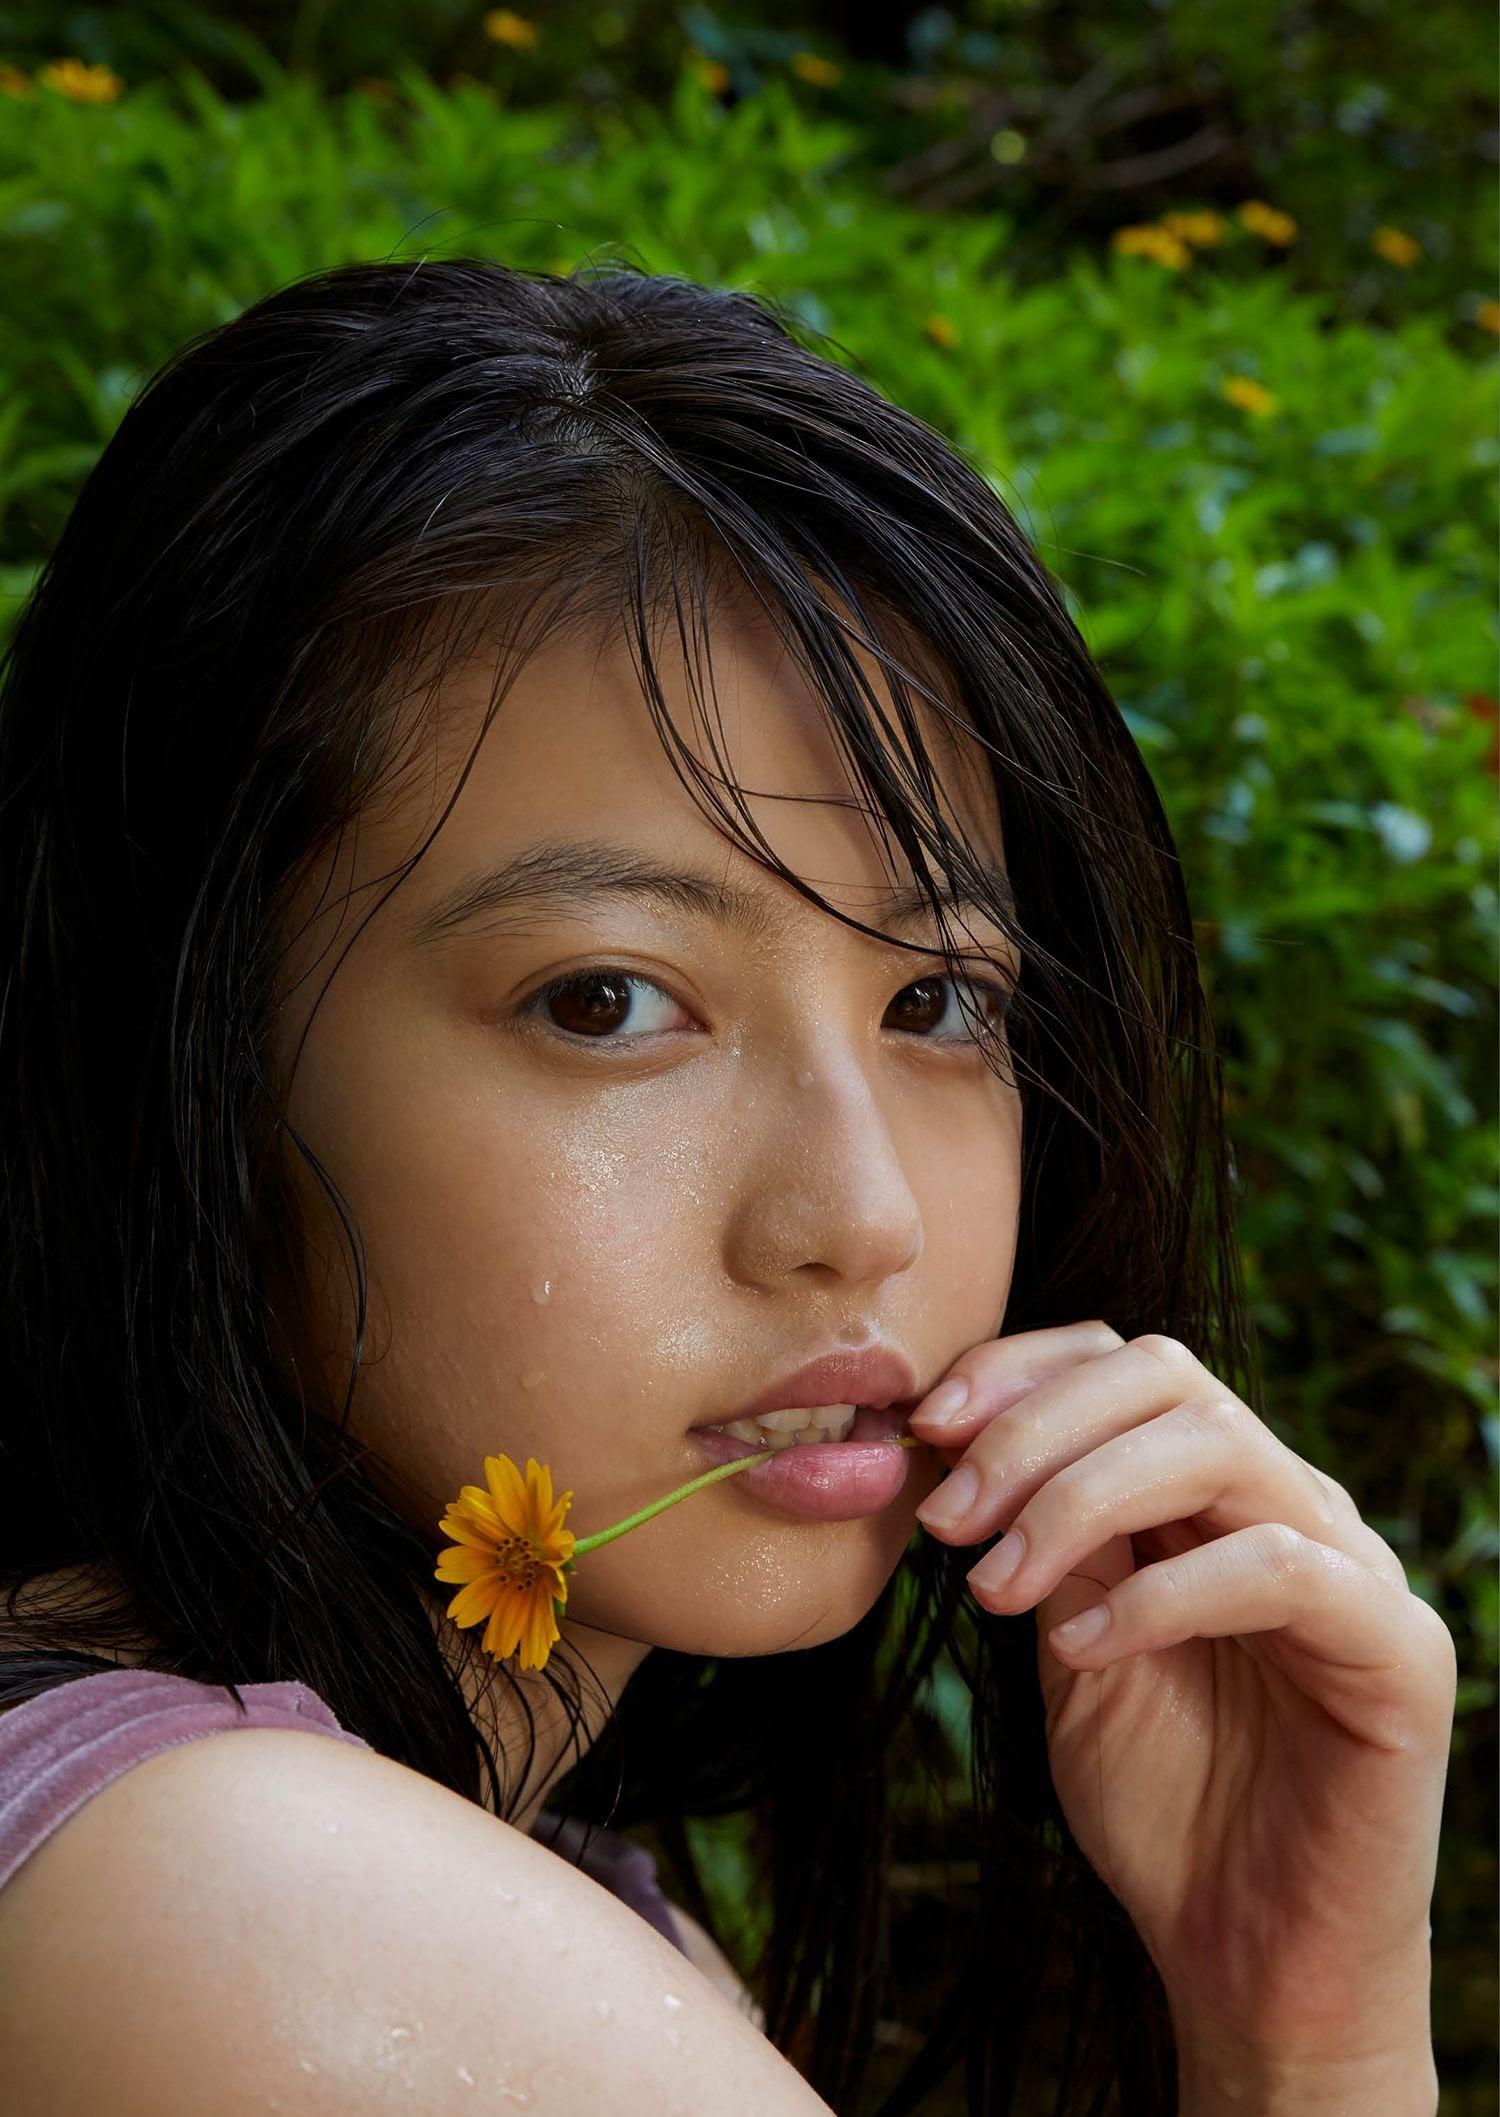 Without a doubt the youngest actress Mio Imada061